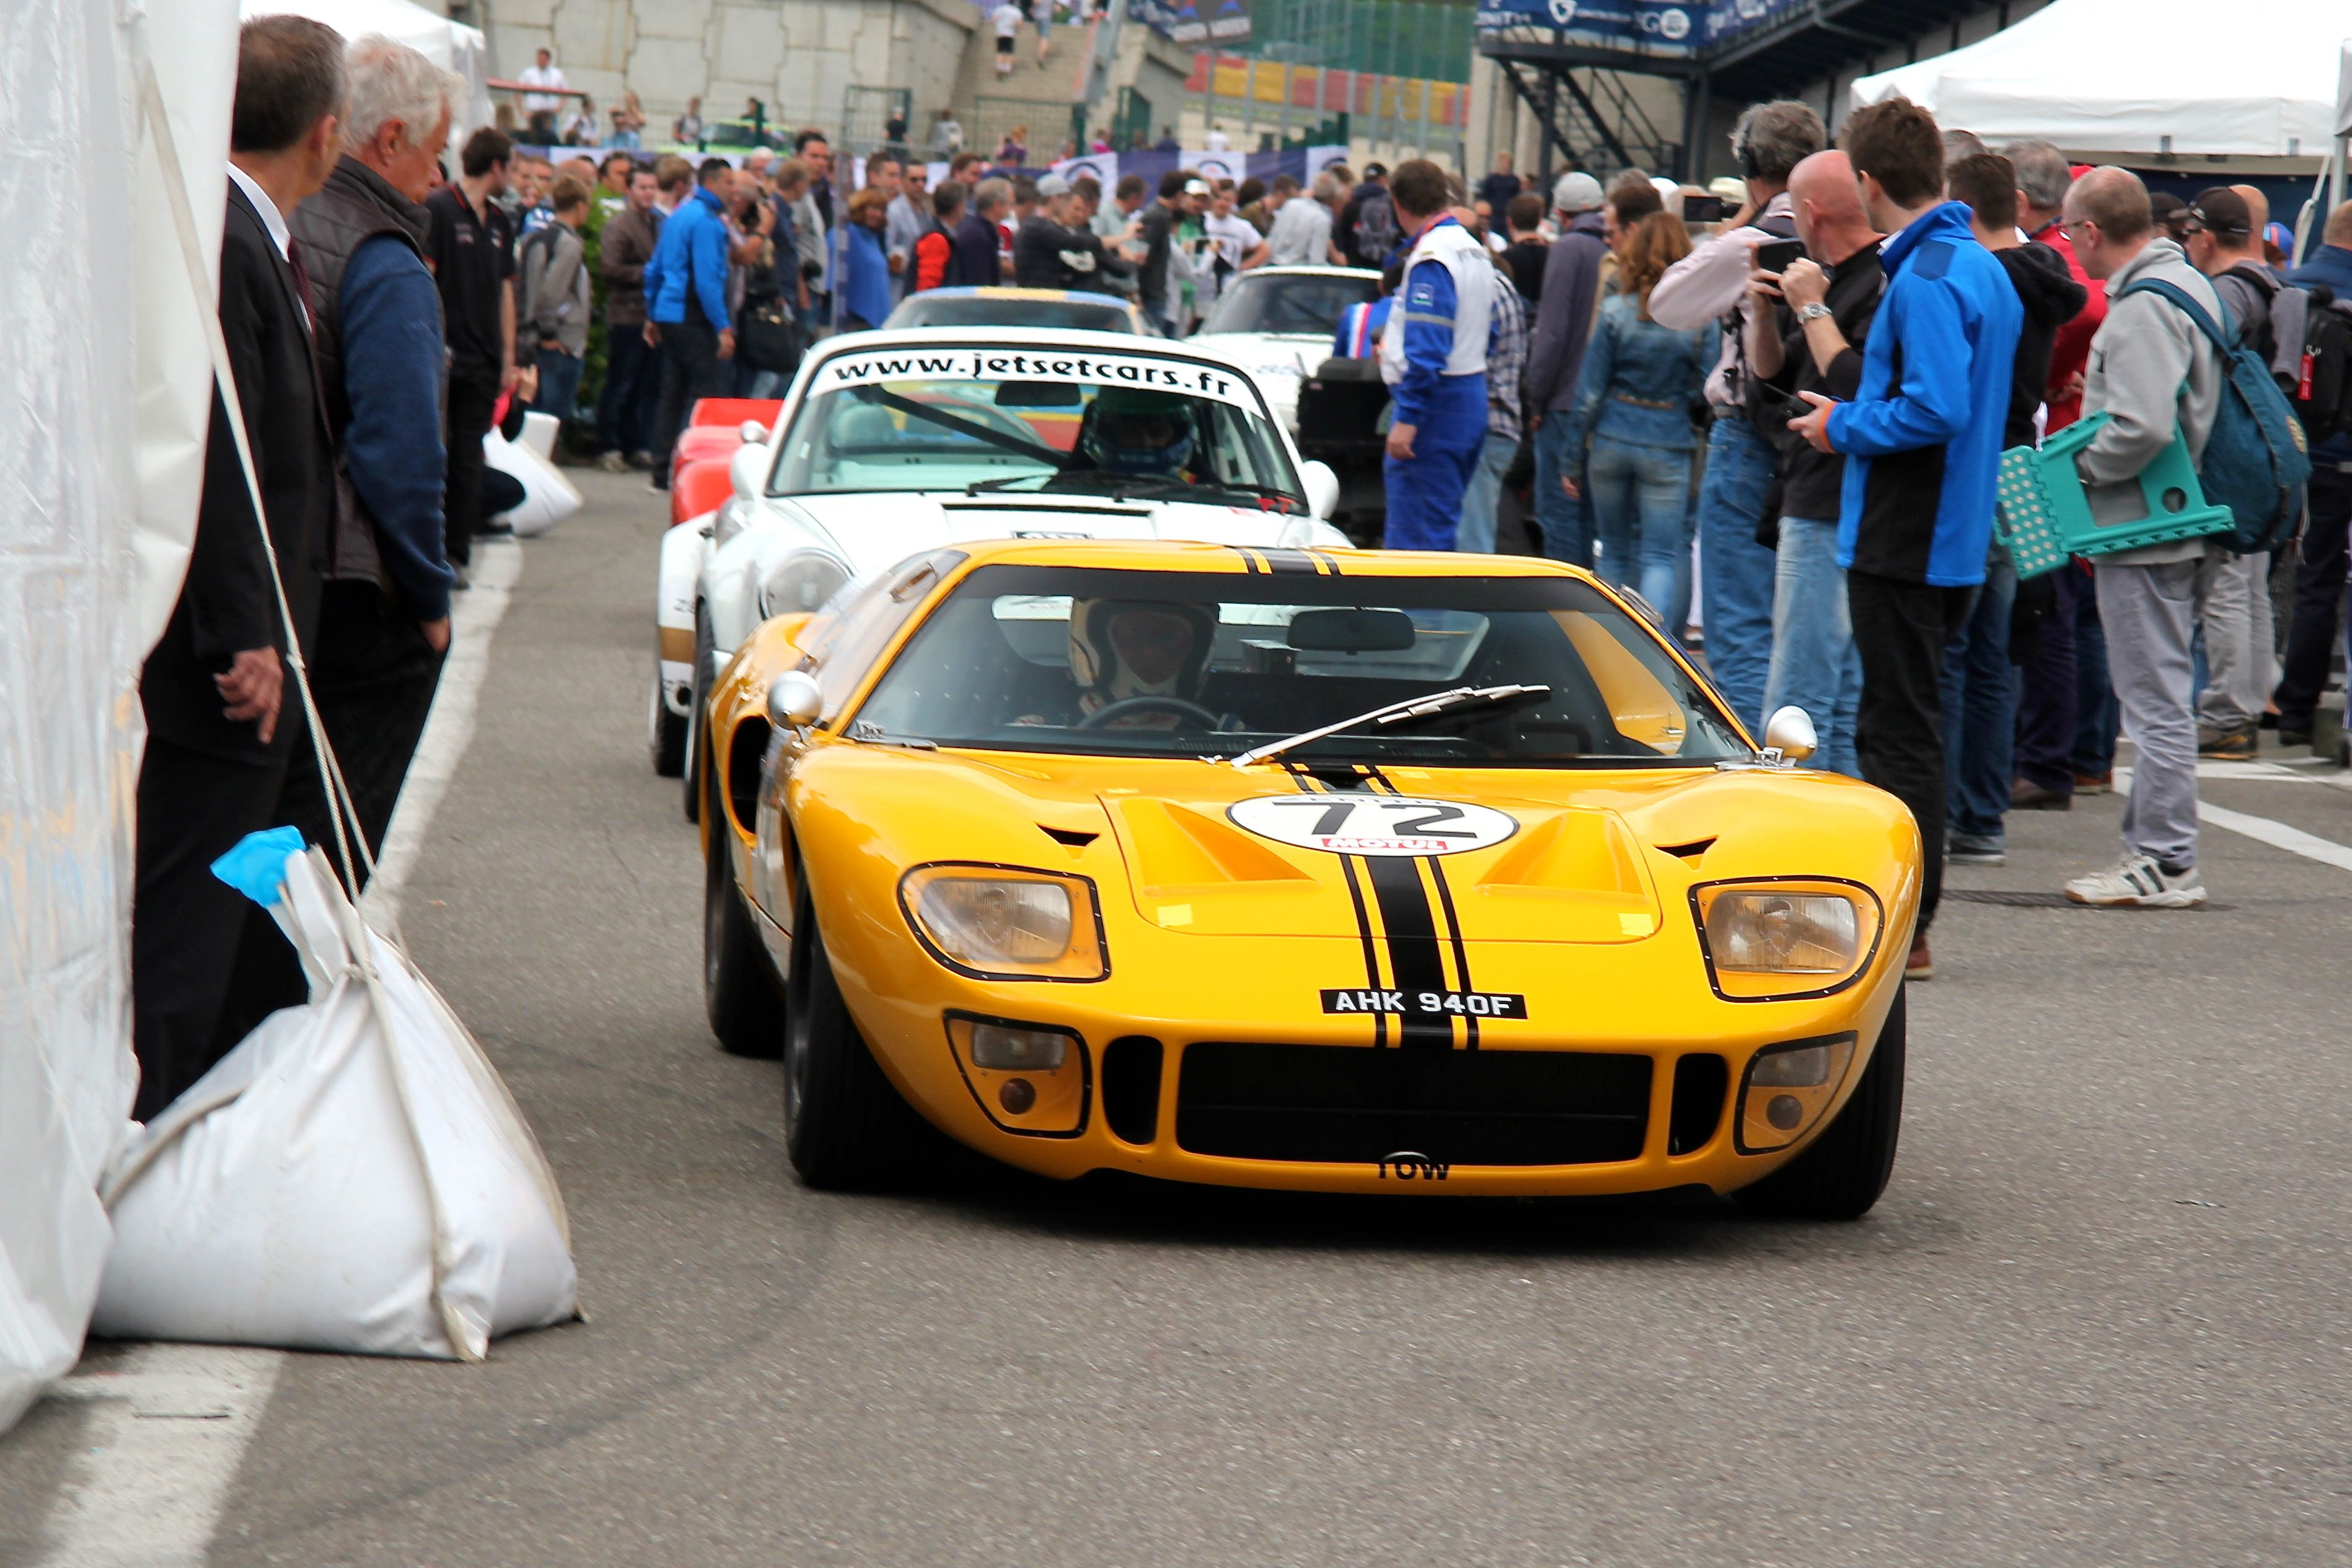 1967 Ford GT40 - Spa-Classic 2015 - Photographie Ludo